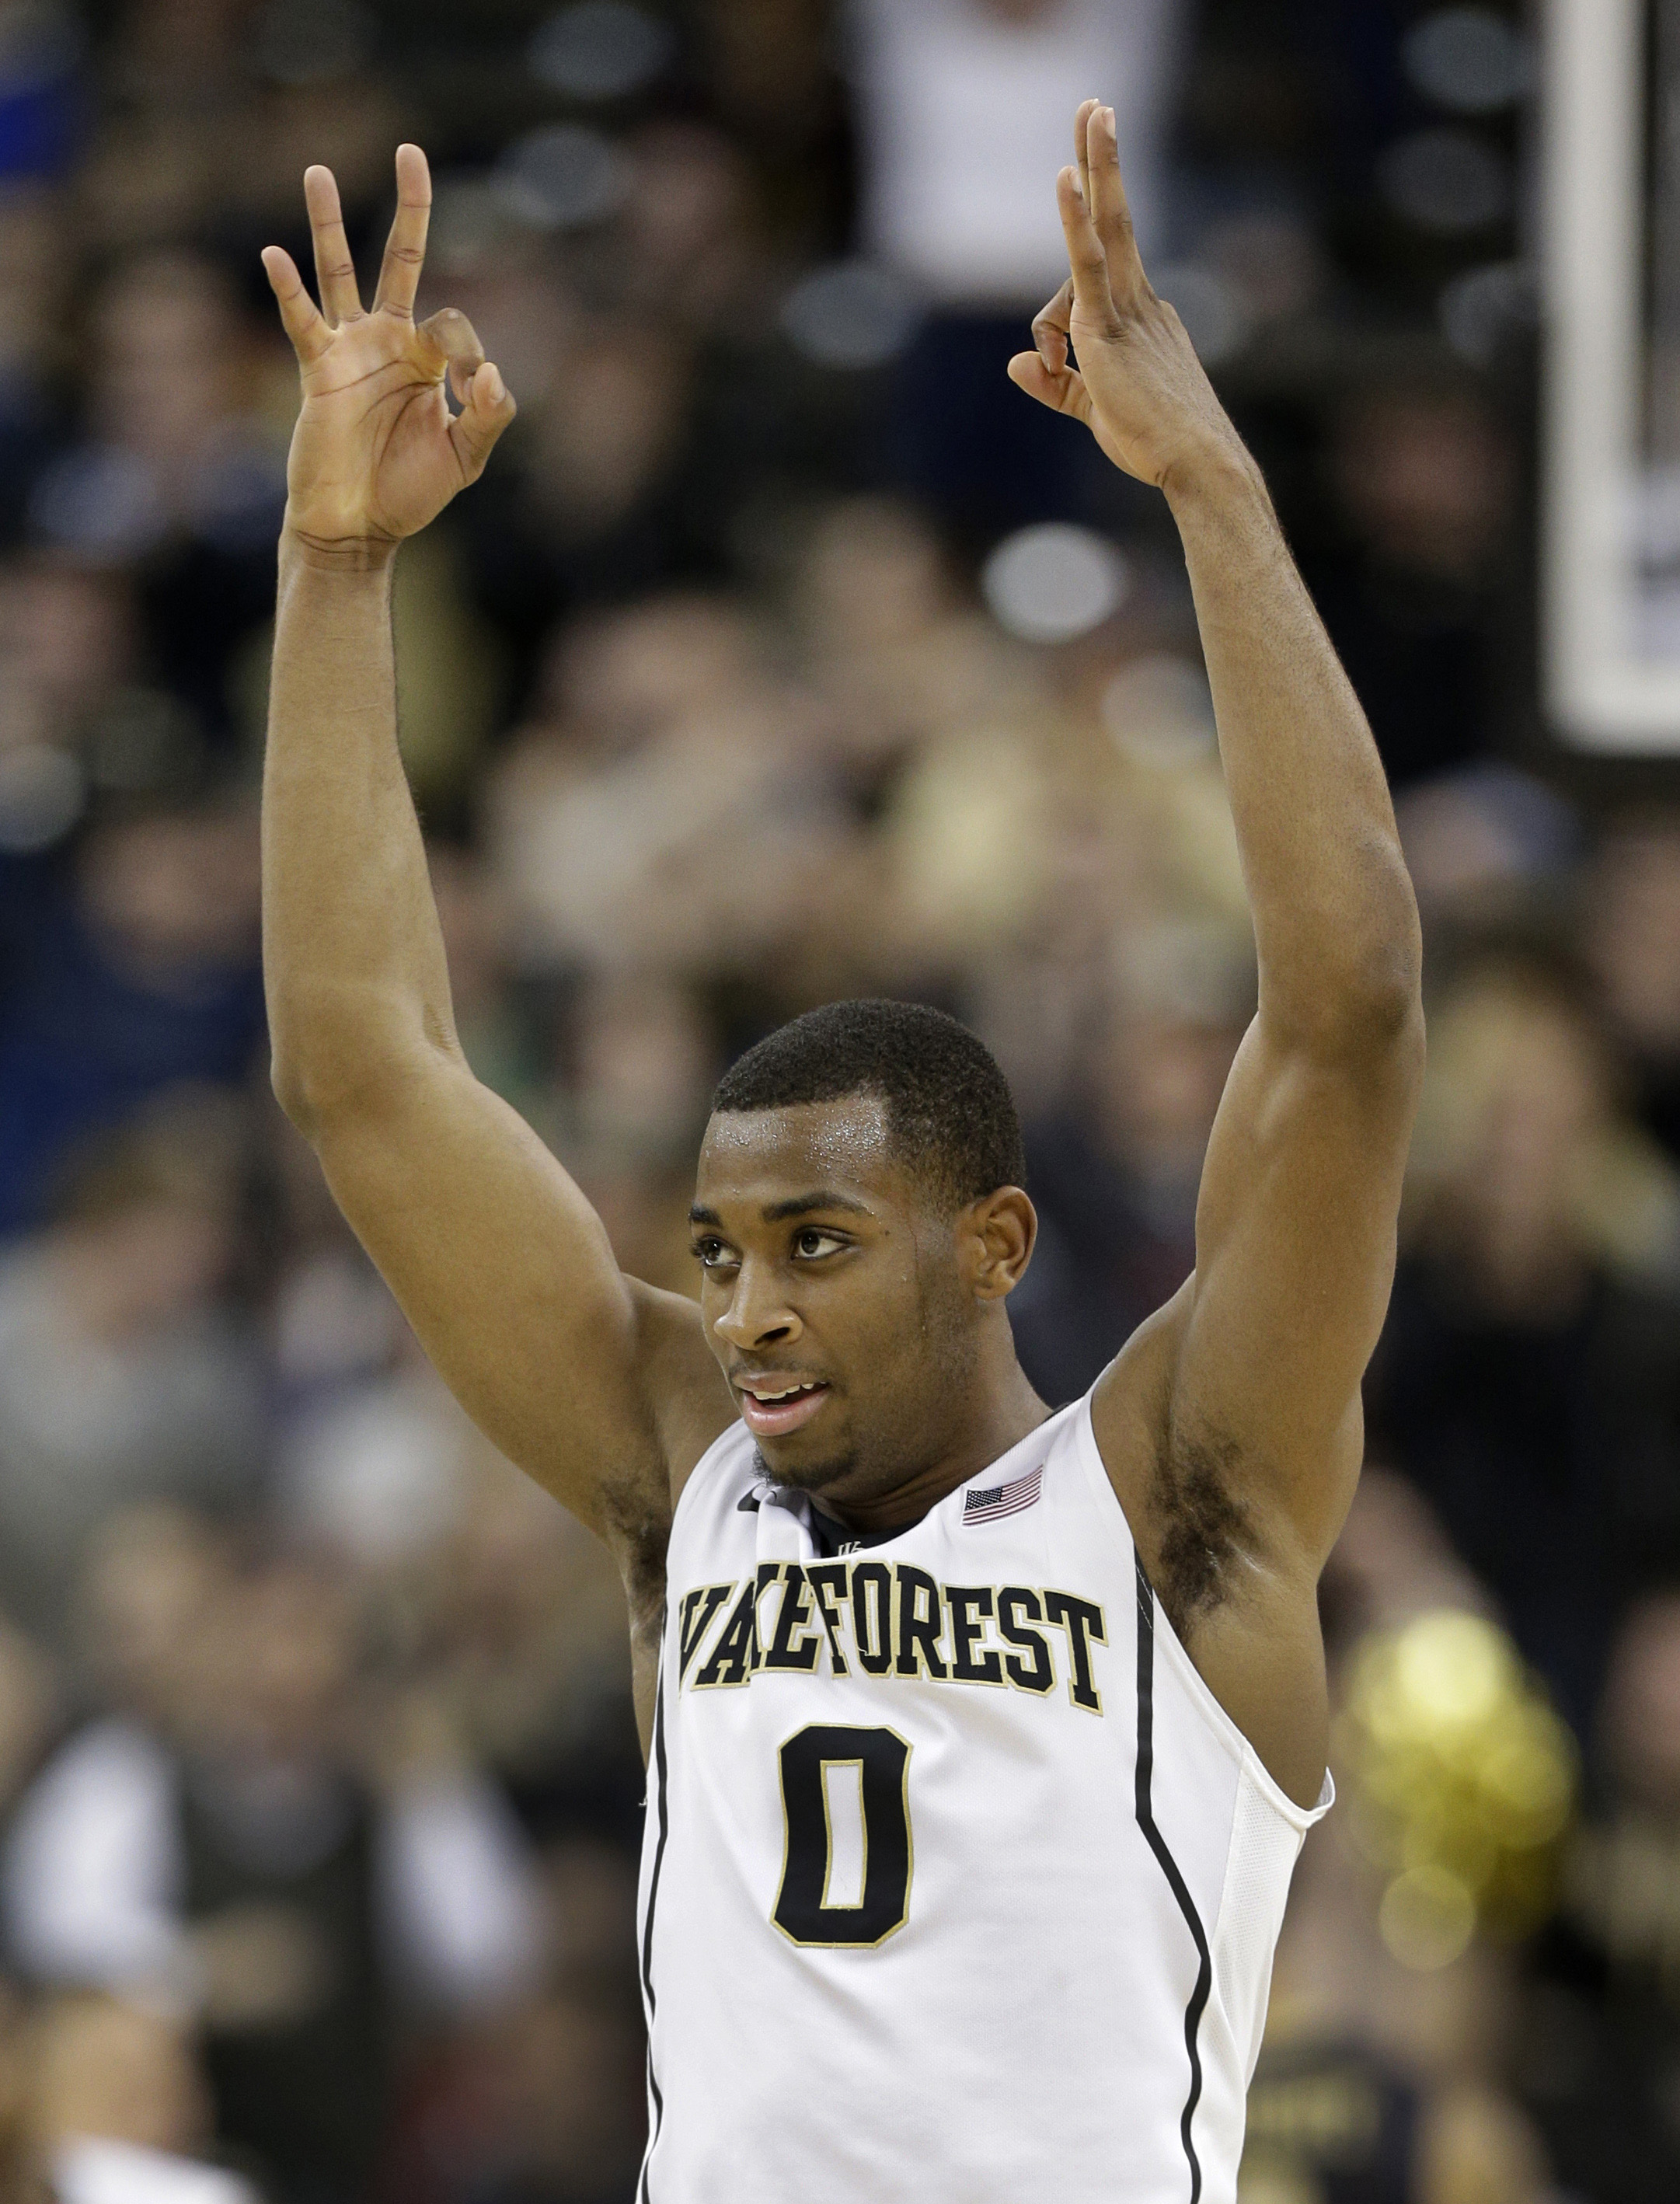 Wake Forest's Codi Miller-McIntyre (0) reacts after a teammate's 3-point basket against Pittsburgh during the second half of an NCAA college basketball game in Winston-Salem, N.C., Sunday, March 1, 2015. Wake Forest won 69-66. (AP Photo/Chuck Burton)